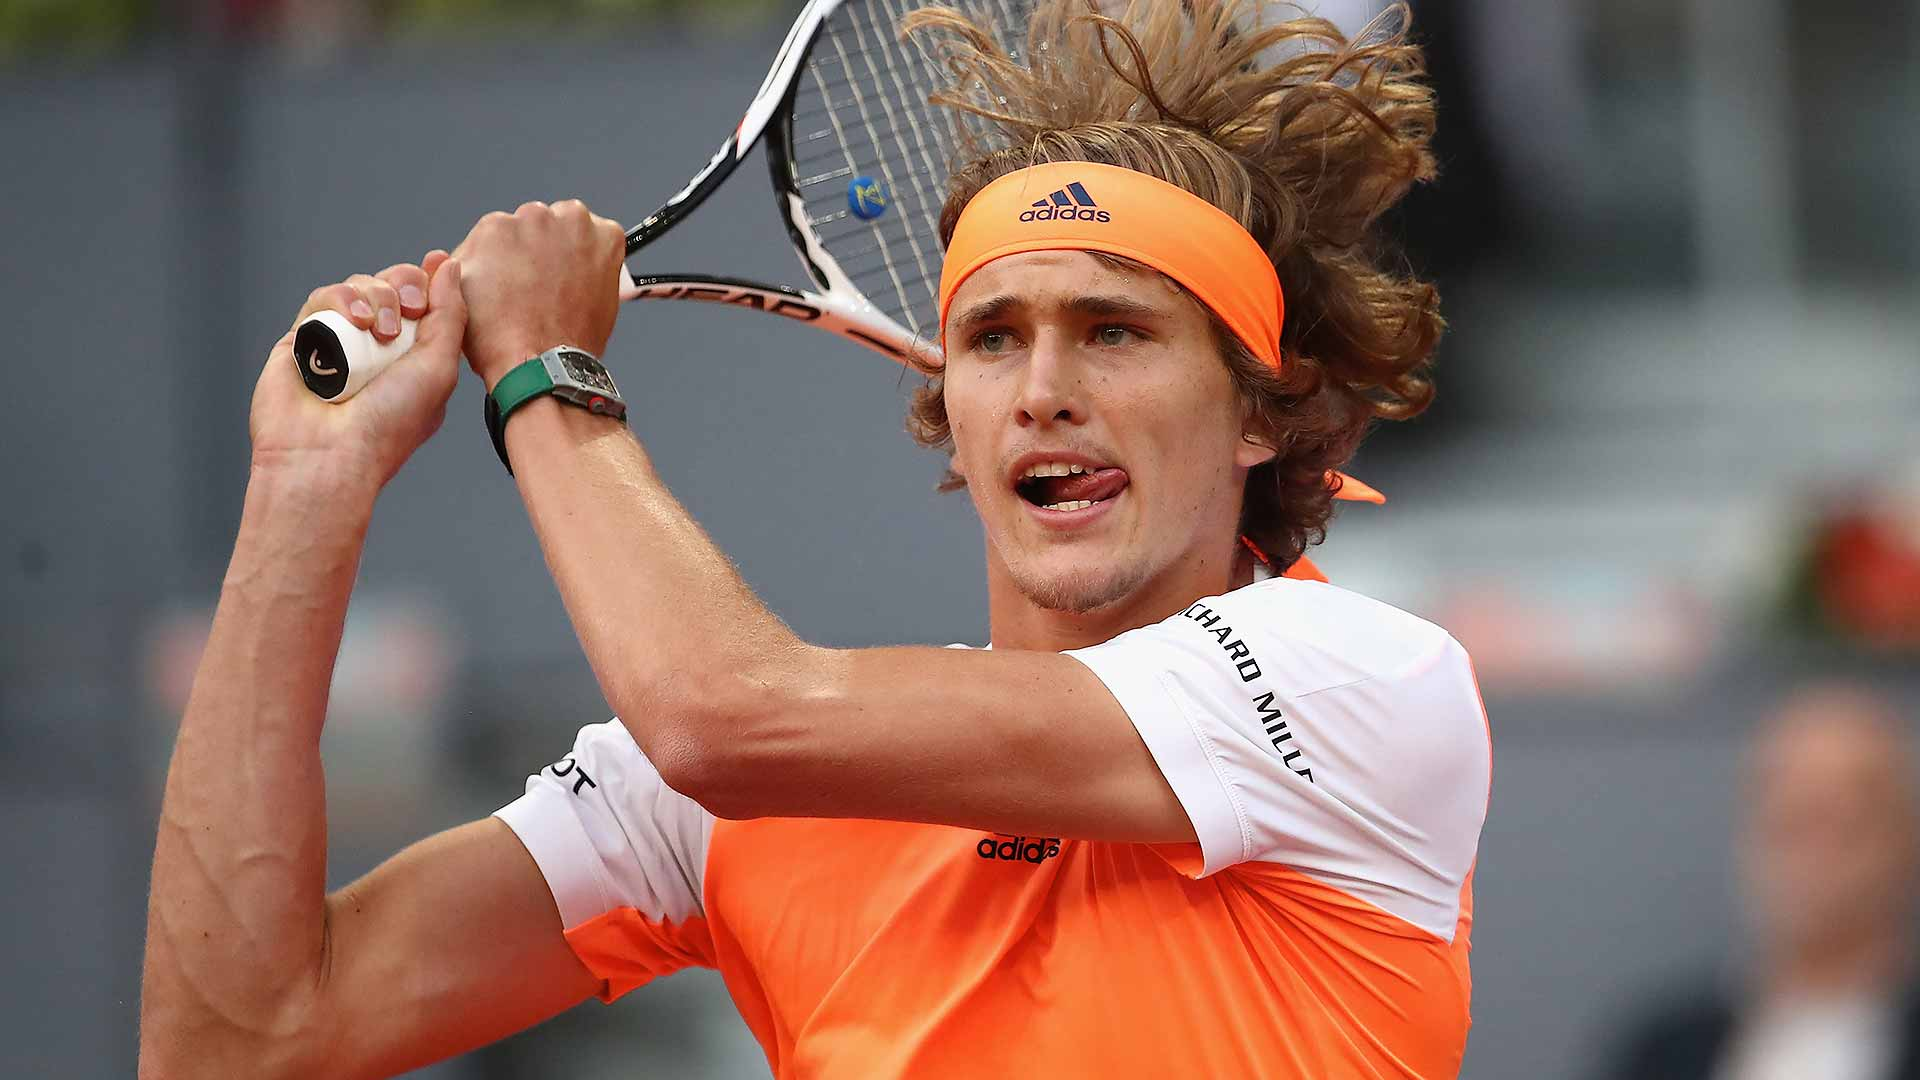 Alexander Zverev struggles at US Open in Pharrell Williams designed retro outfit